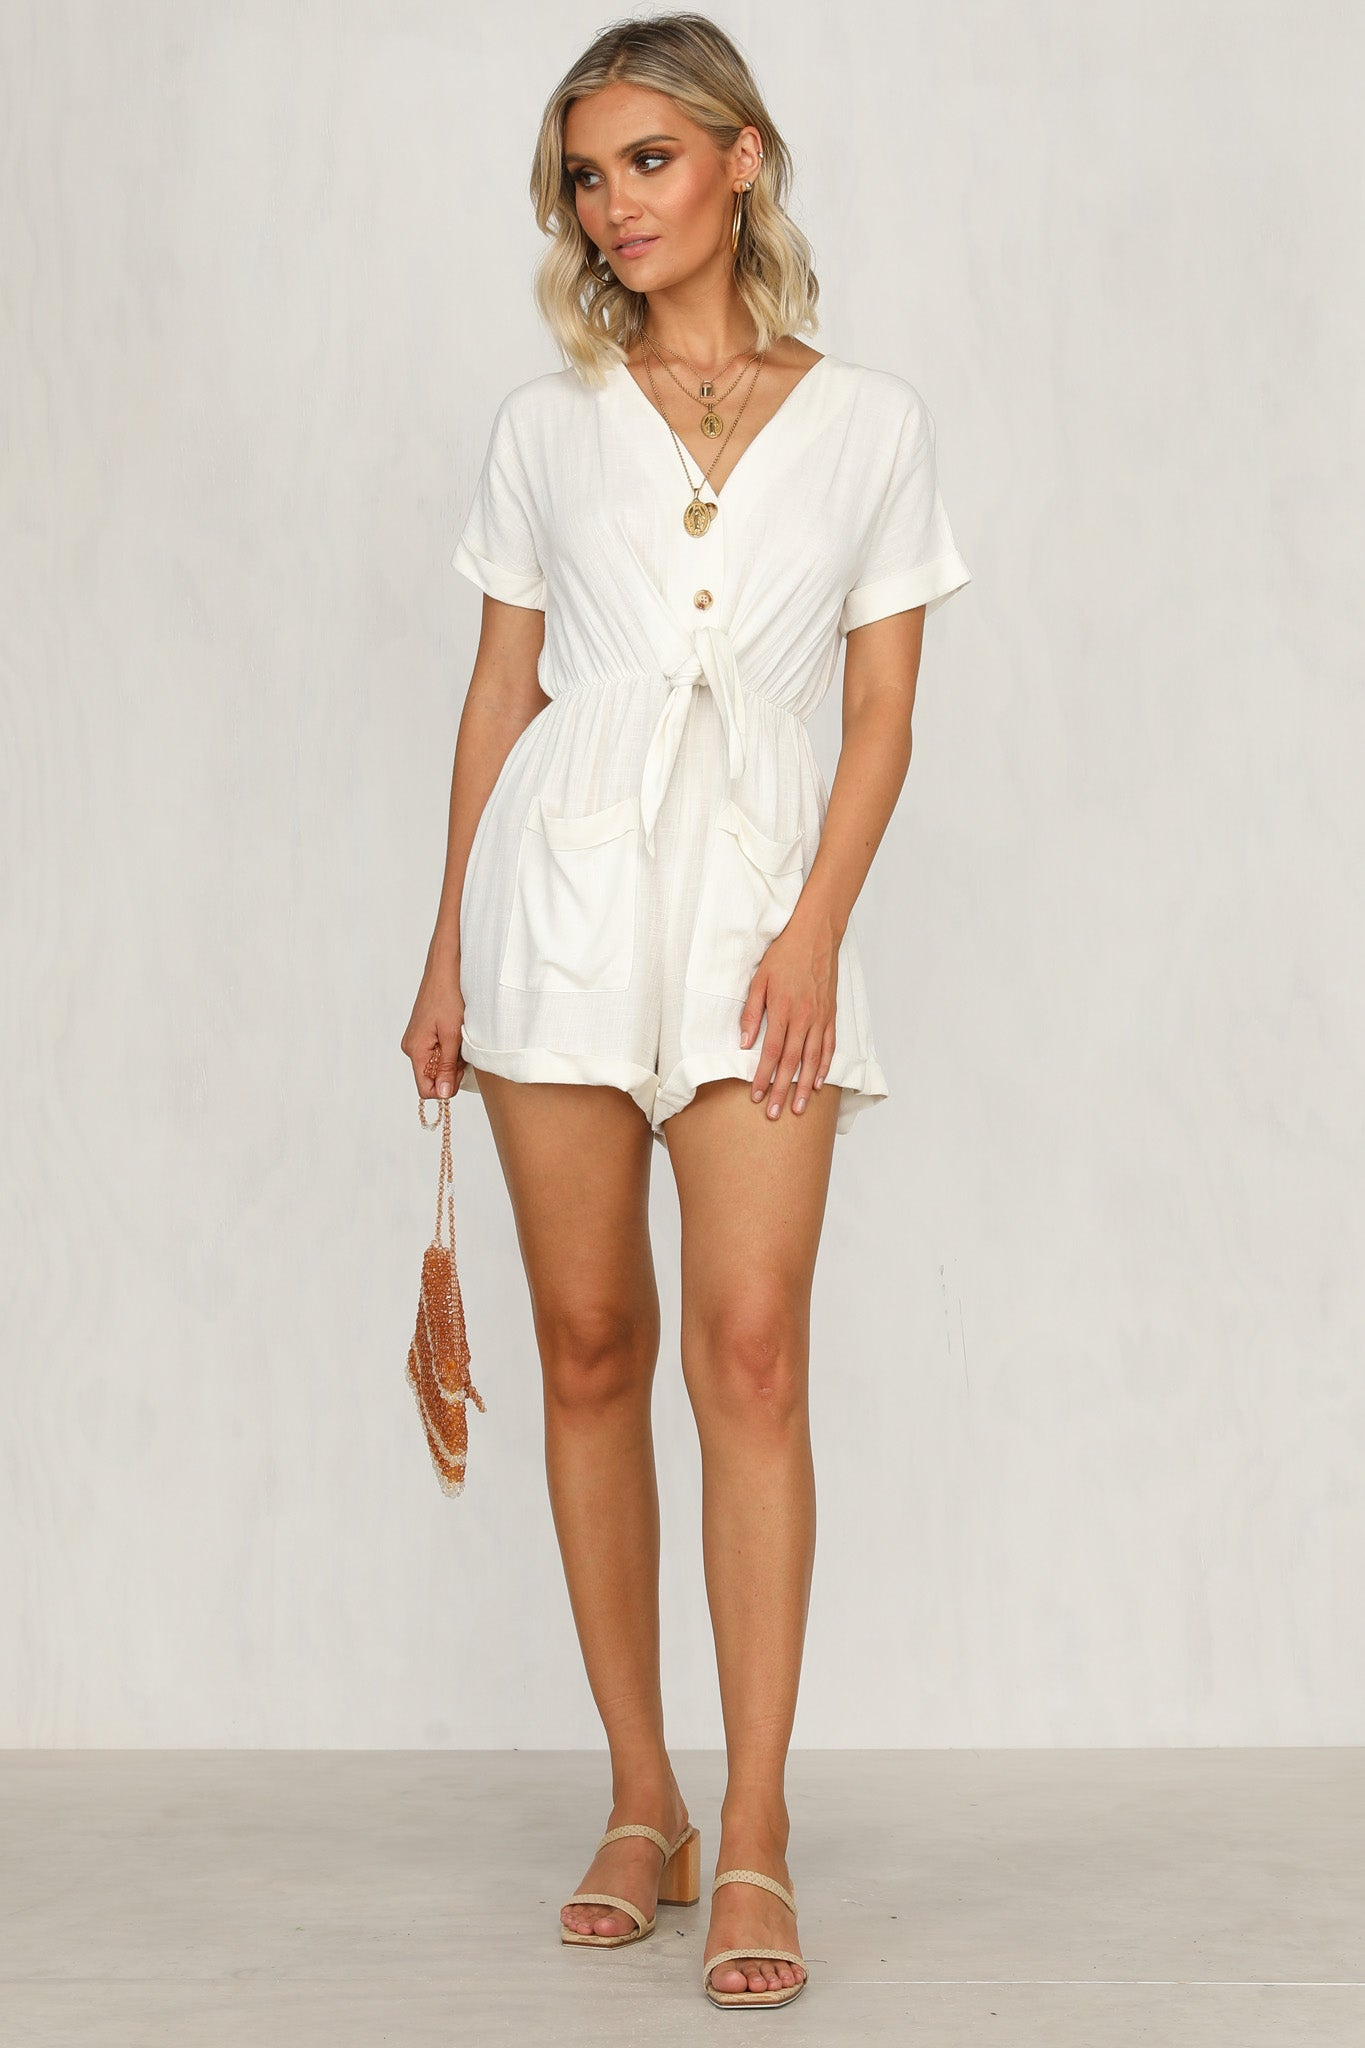 Opposites Attract Playsuit